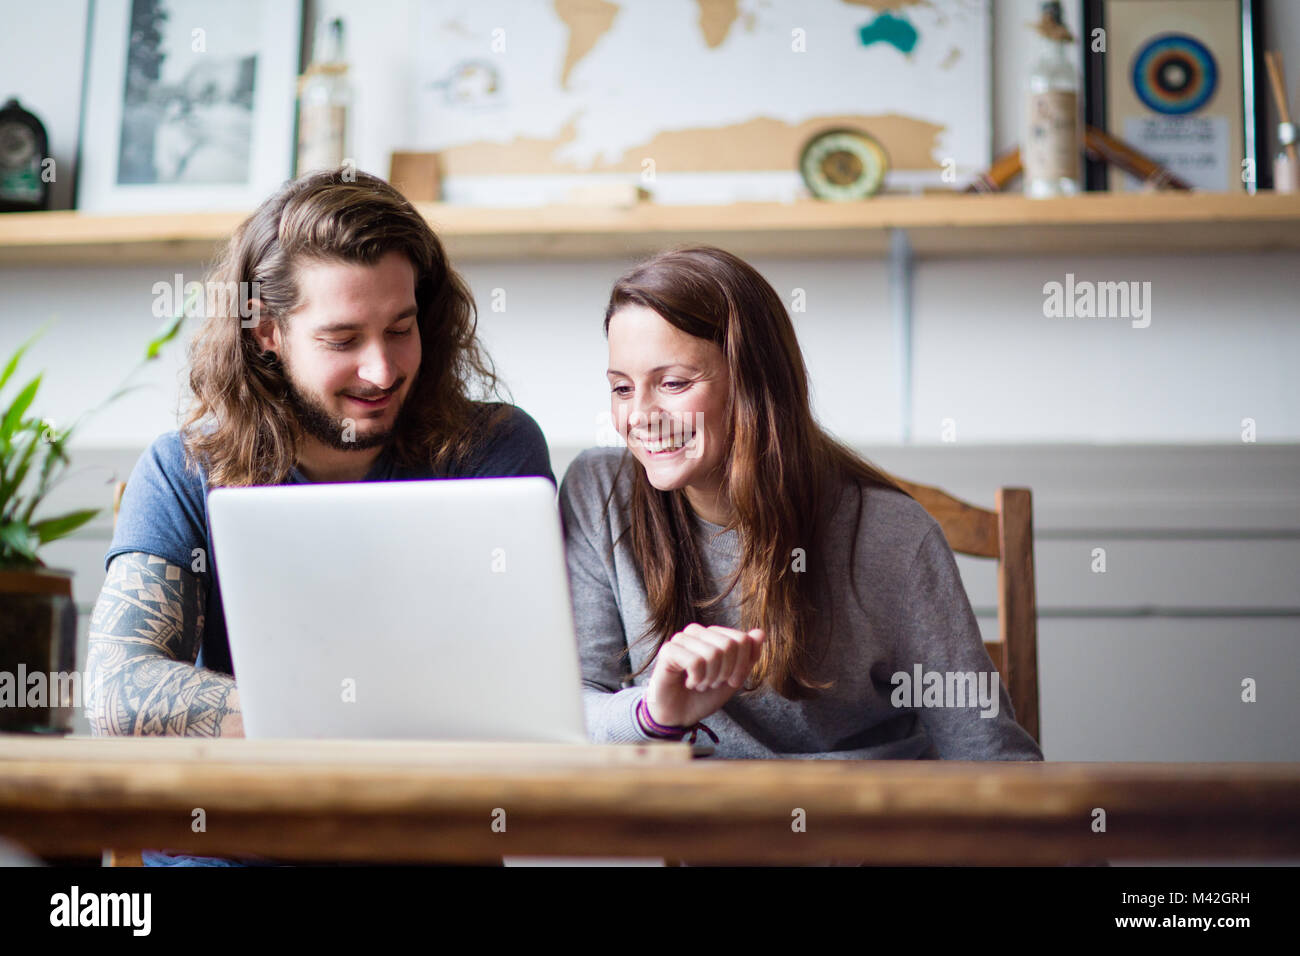 Young adult couple using a laptop together - Stock Image